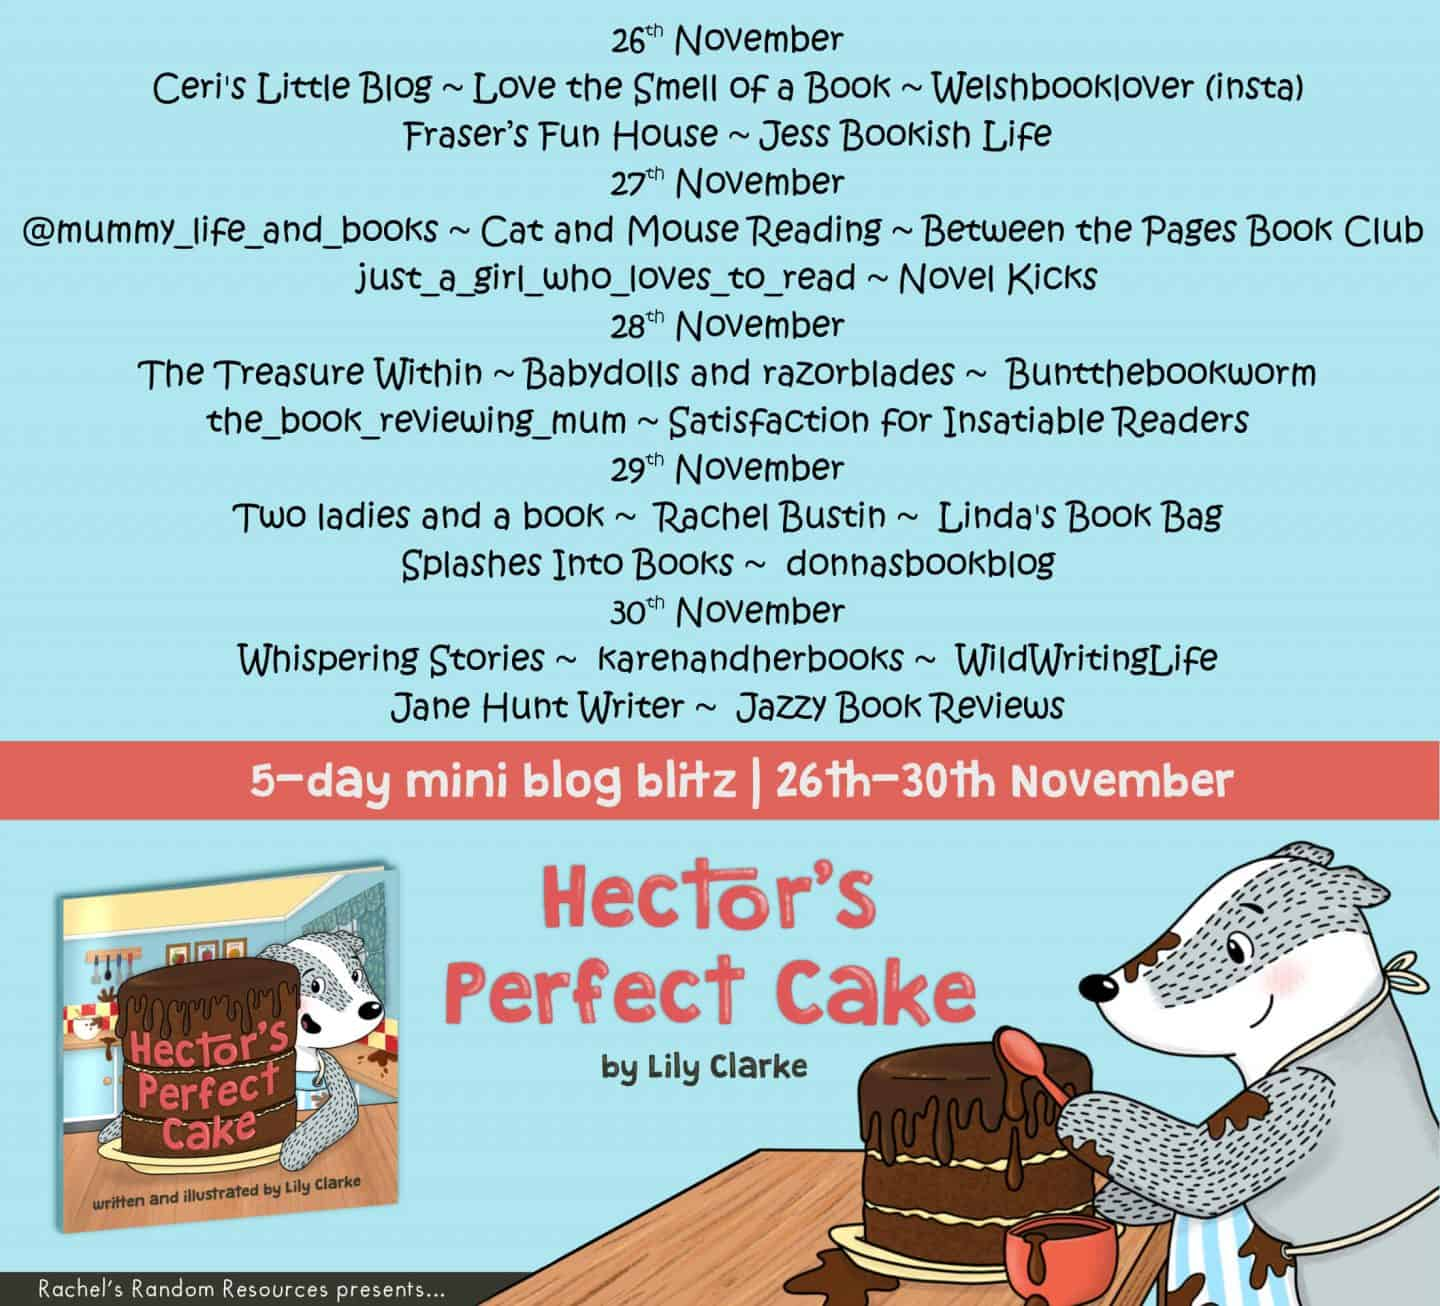 Hector's Perfect Cake blog tour